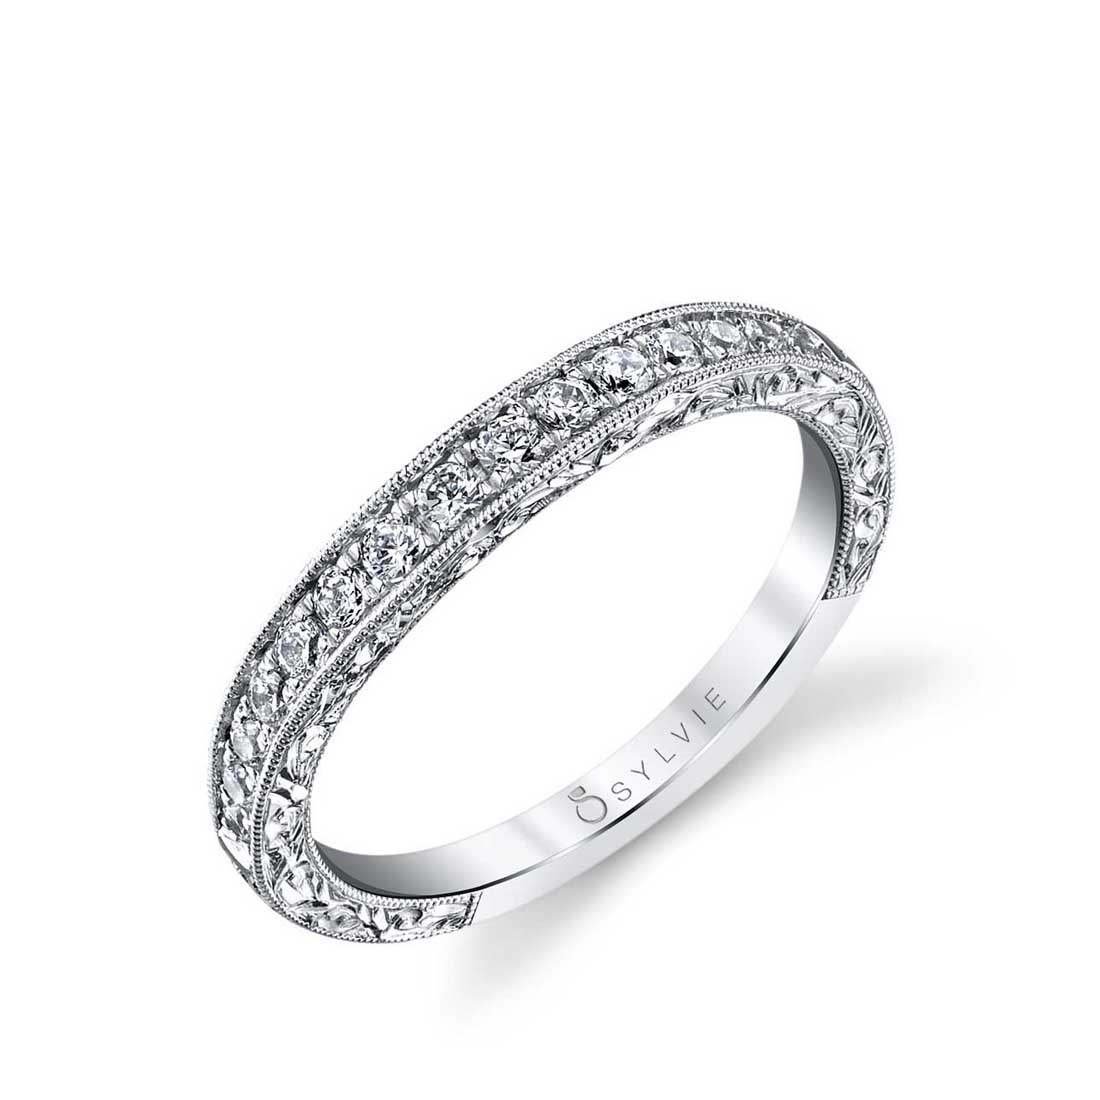 Profile Image of a Princess Cut Engagement Ring